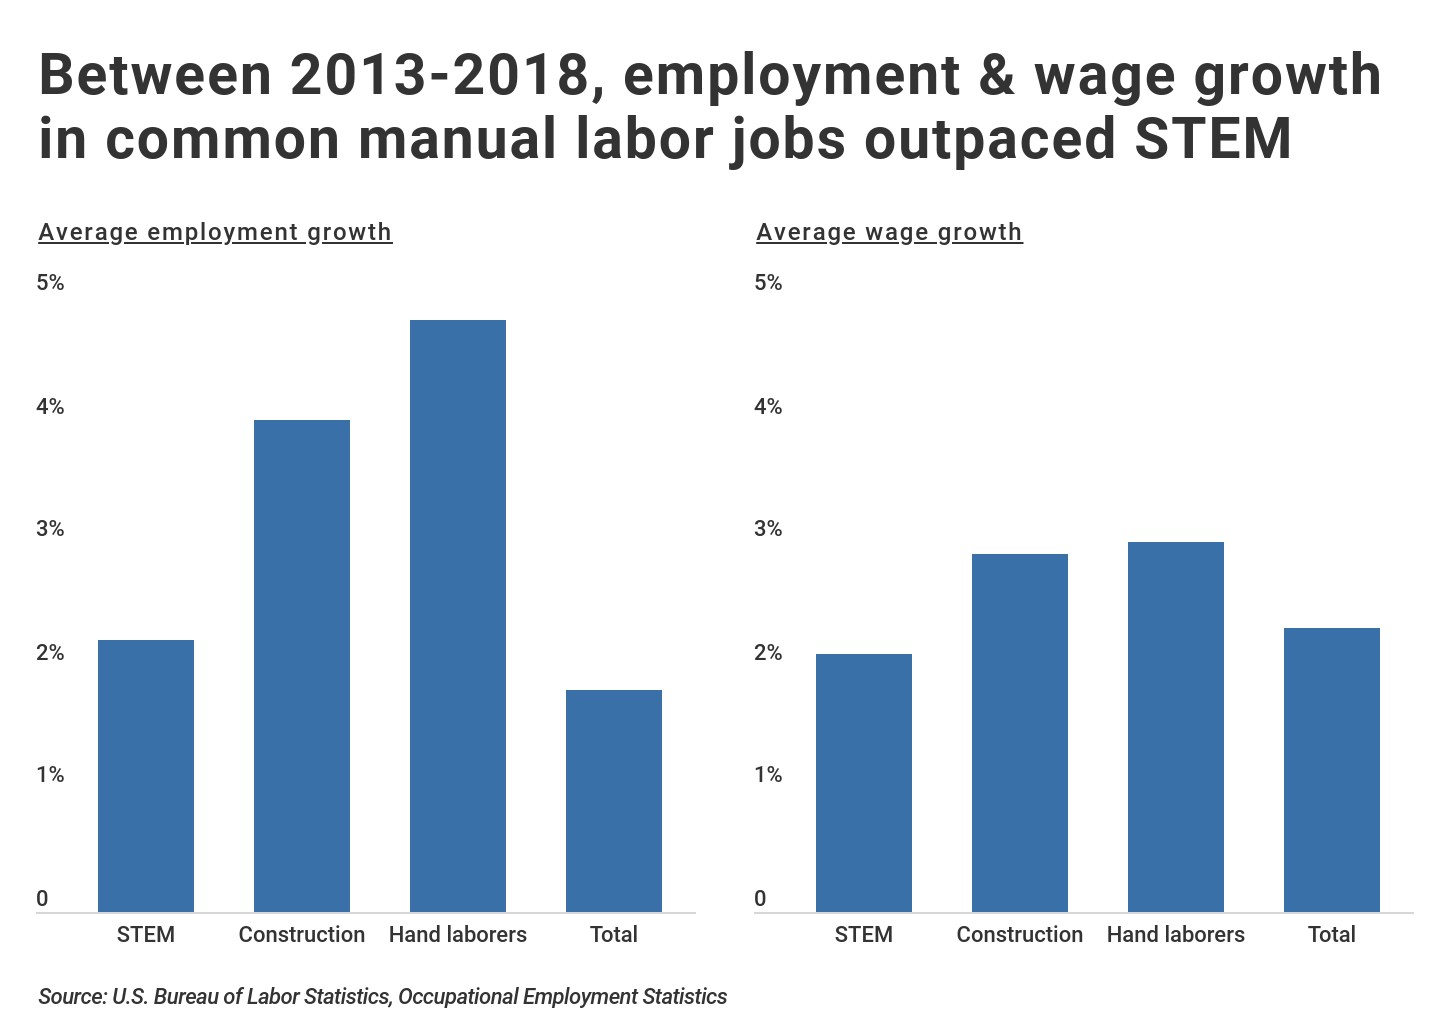 Average employment and wage growth for STEM and labor jobs in the U.S.